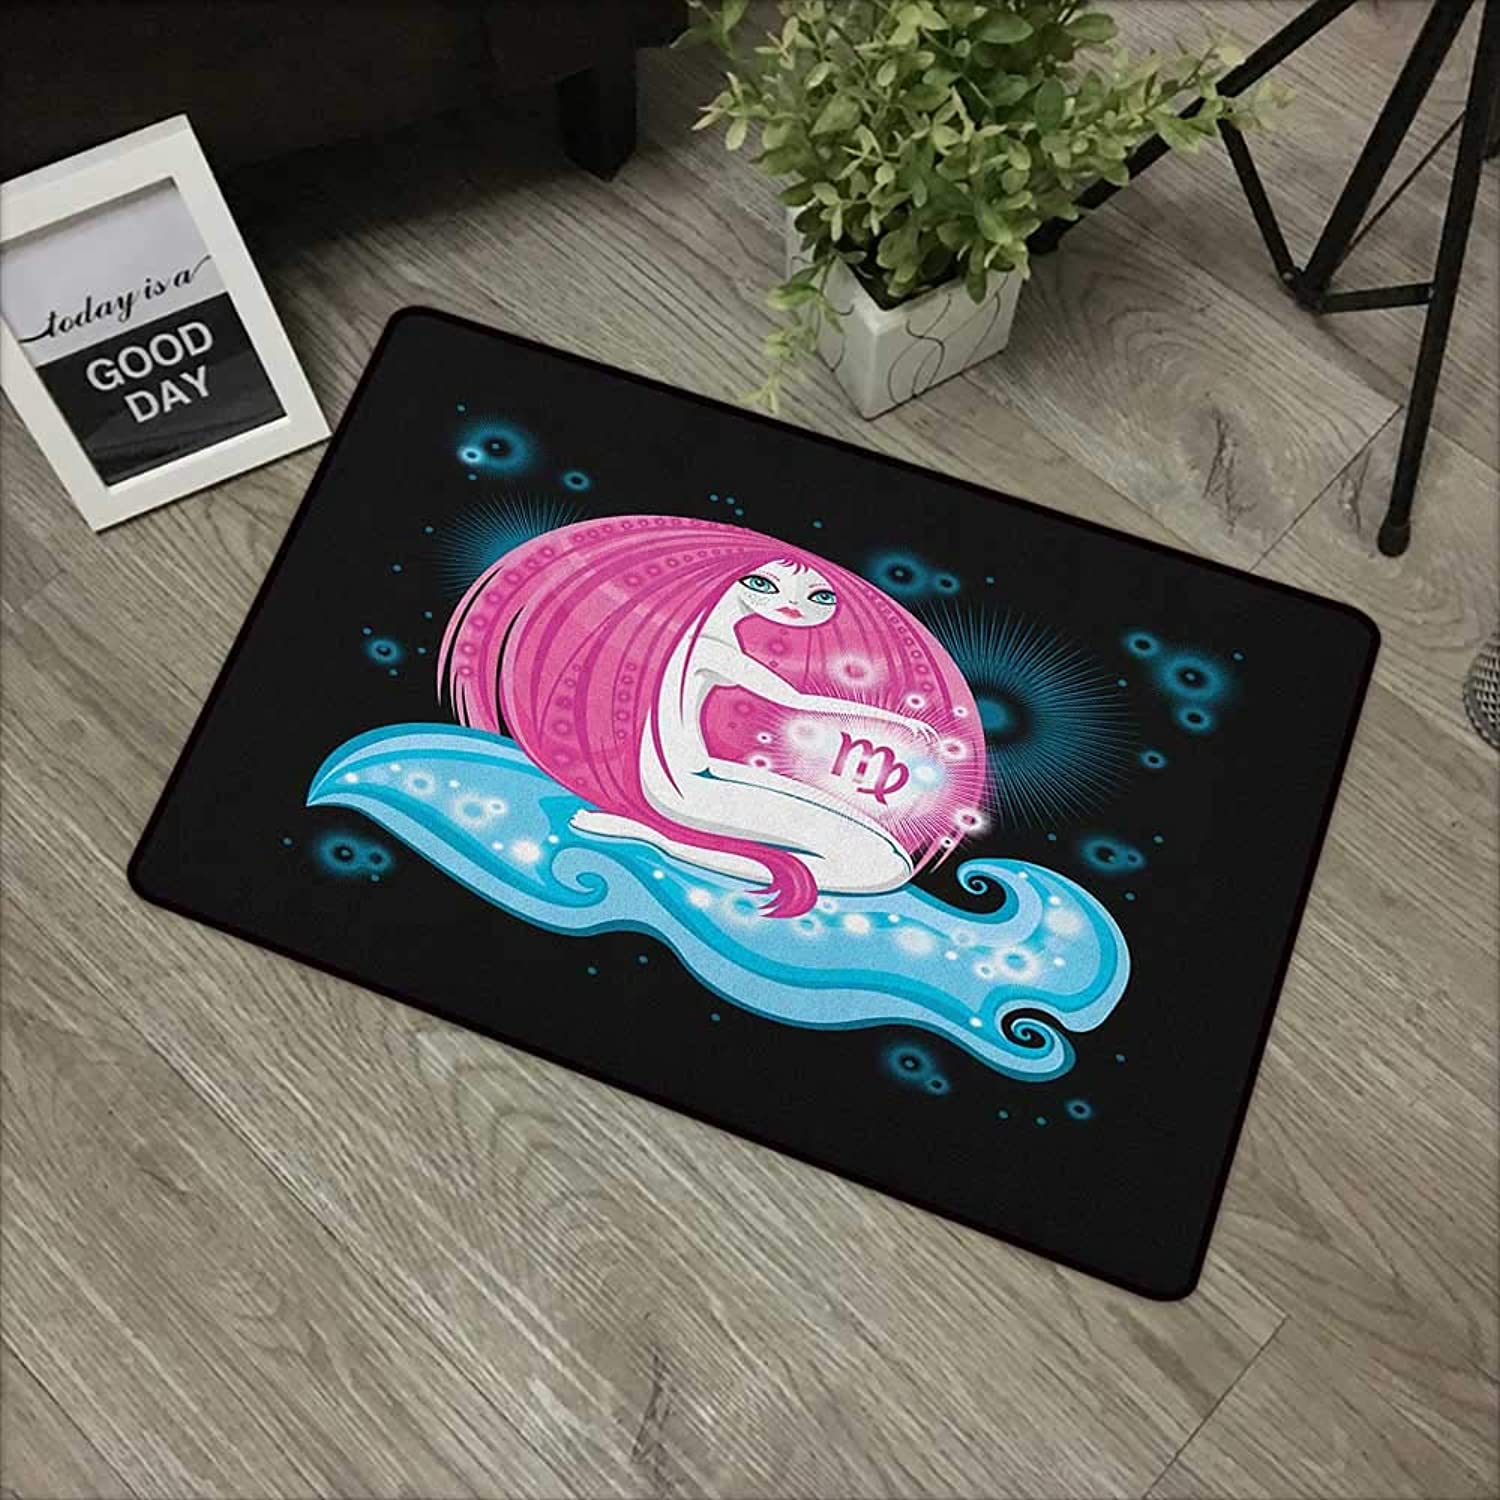 Restaurant mat W35 x L59 INCH Virgo,Cartoon Hgoldscope Symbol with Really Long Haired Girl Sitting on Wave in Space, Pink bluee Black Natural dye printing to predect your baby's skin Non-slip Door Mat C